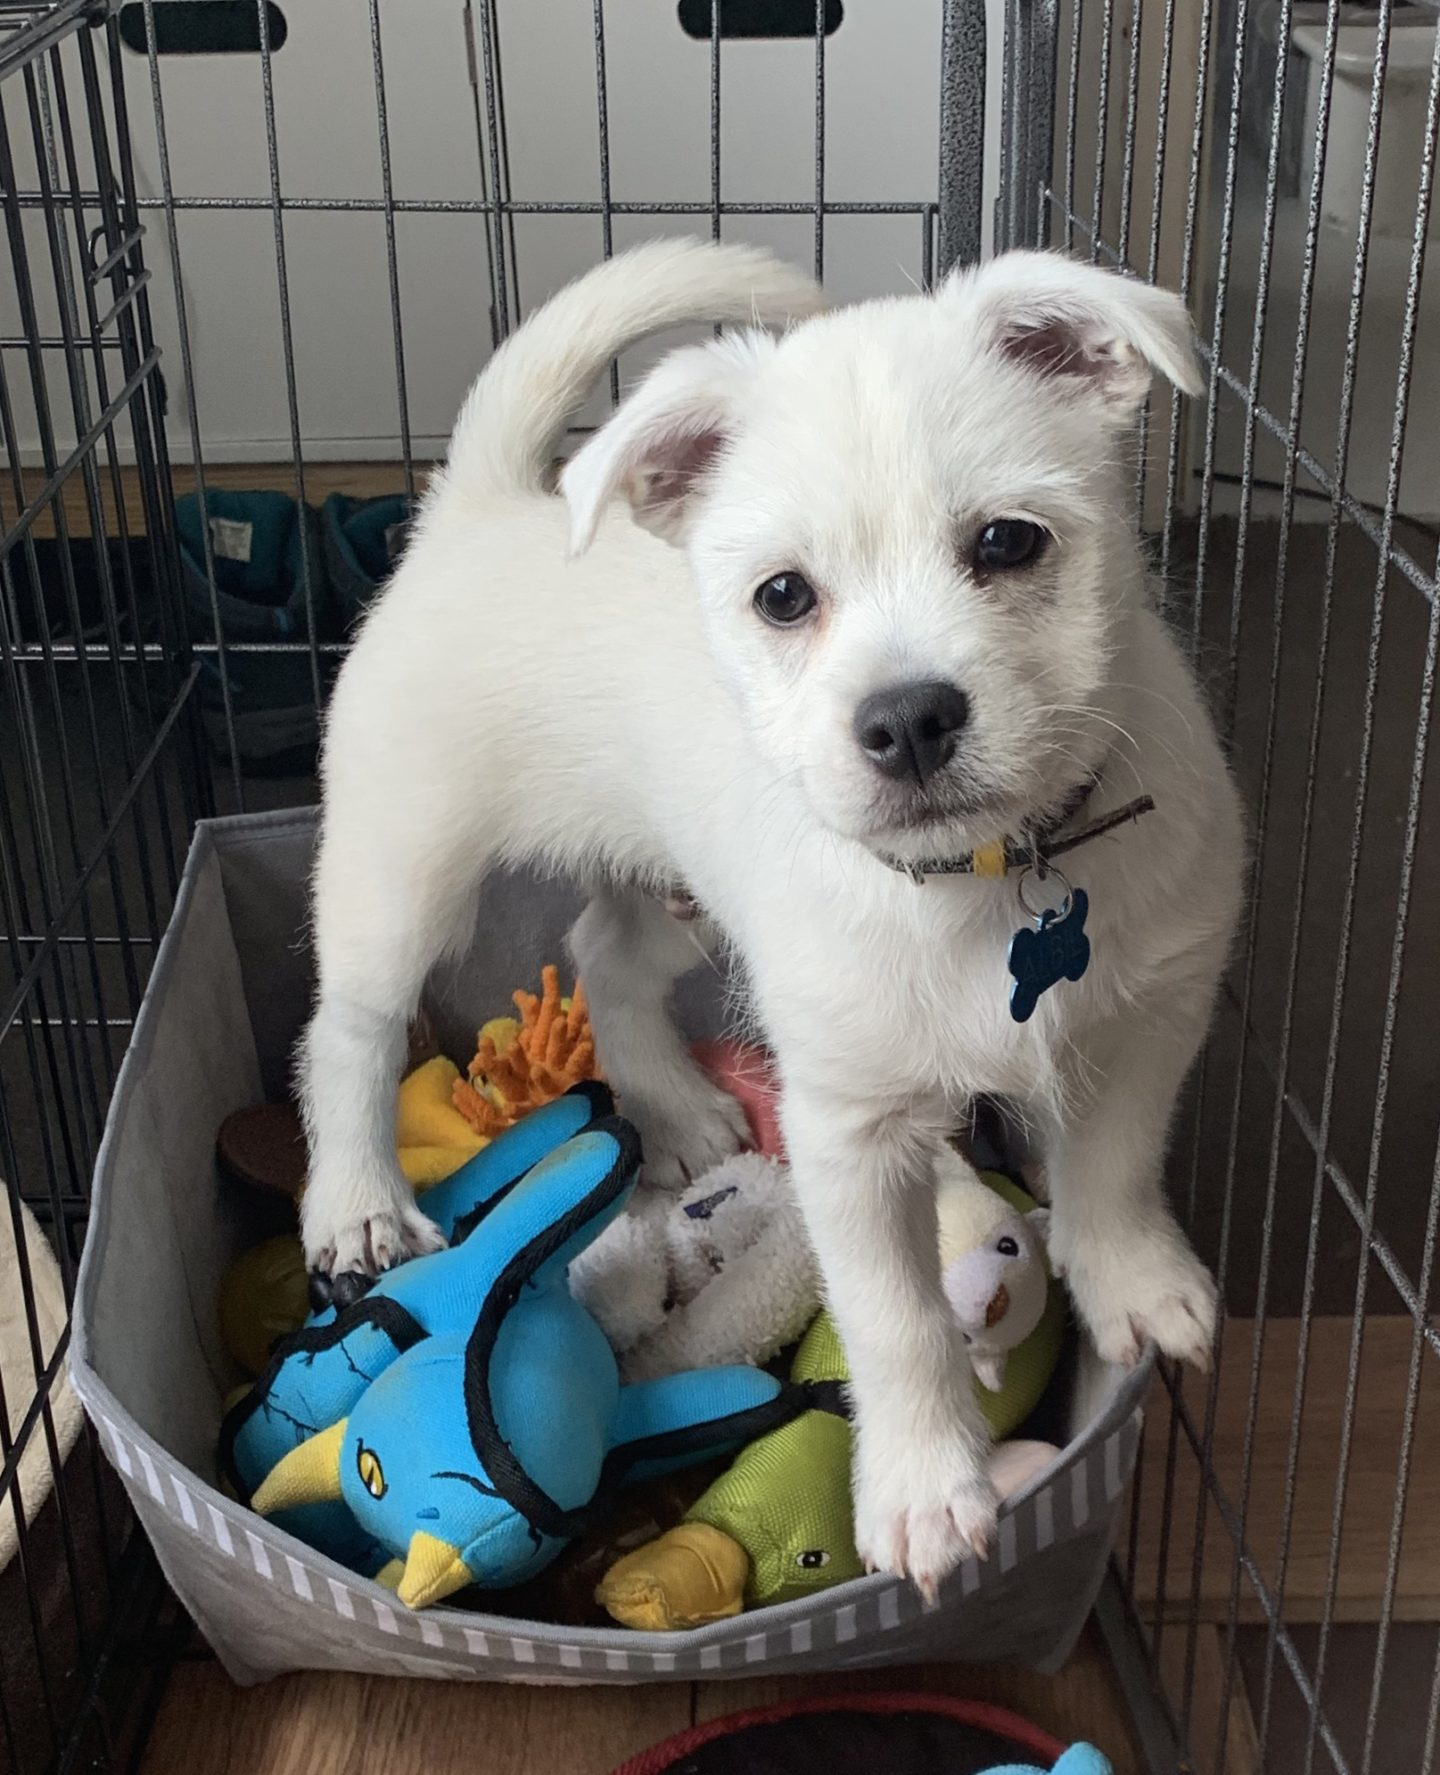 westie puppy standing on a pile of dog toys from Pets at Home.